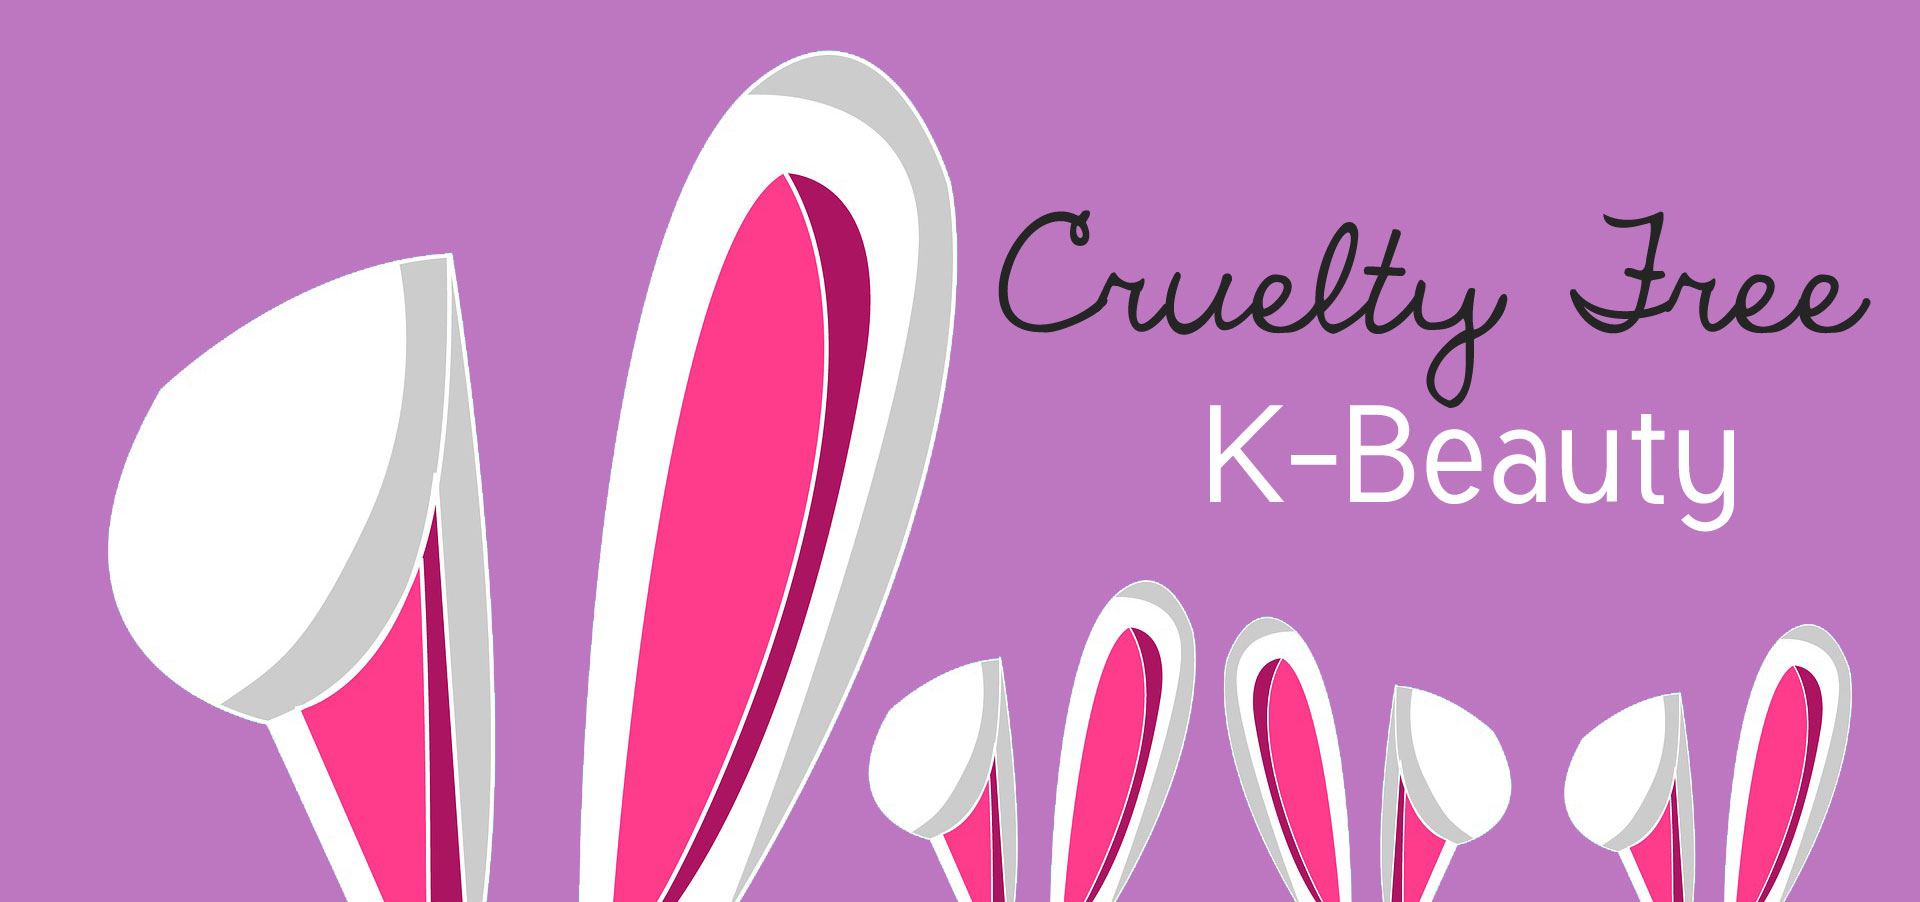 Banner Cruelty Free K-Beauty